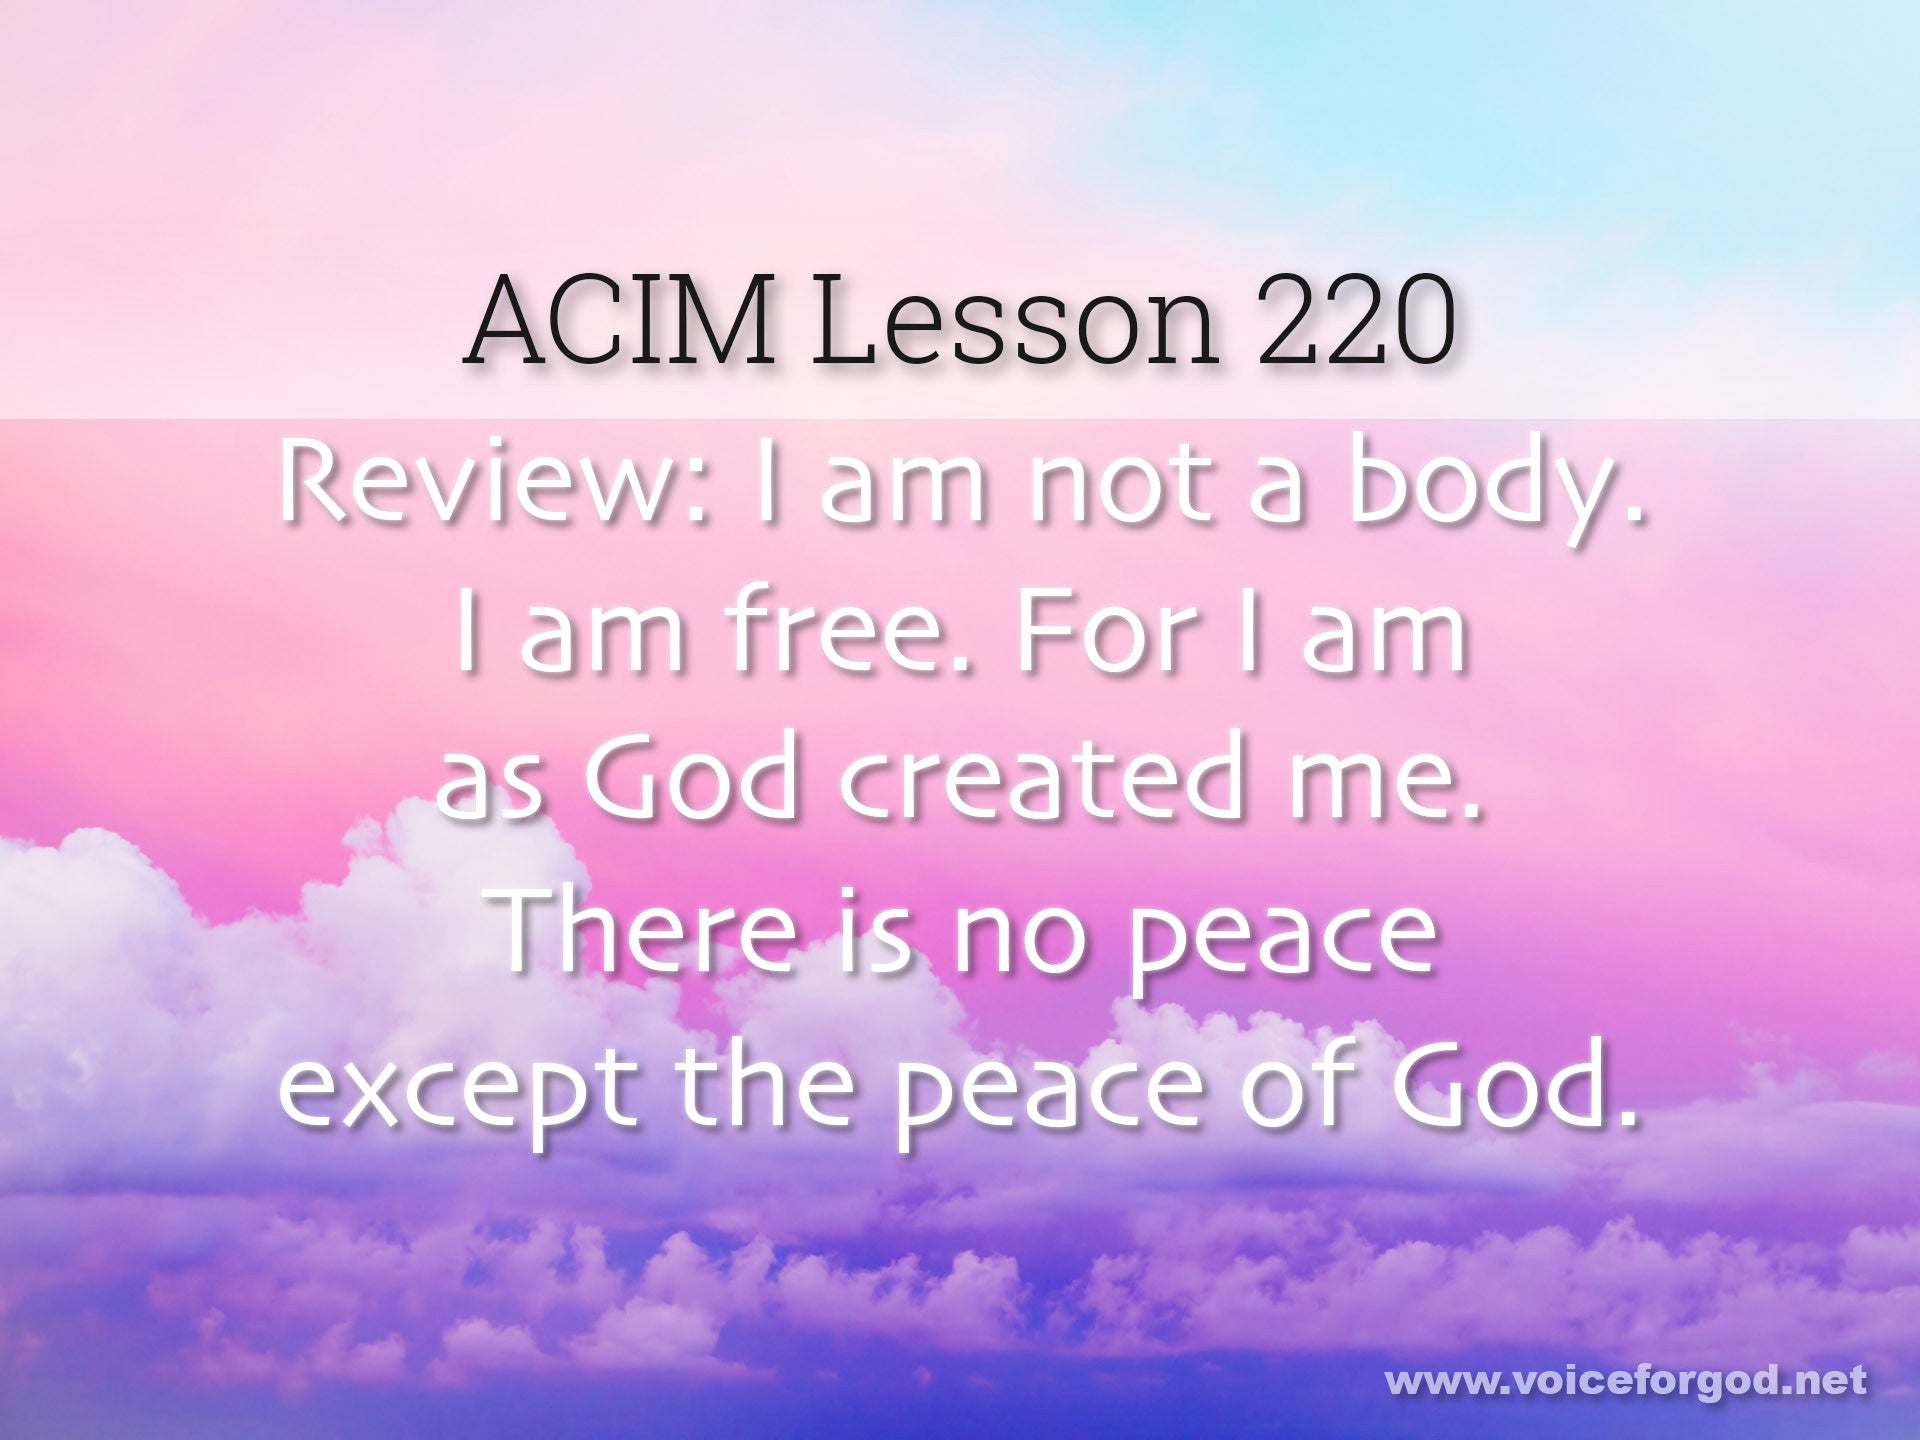 ACIM Lesson 220 - A Course in Miracles Workbook Lesson 220